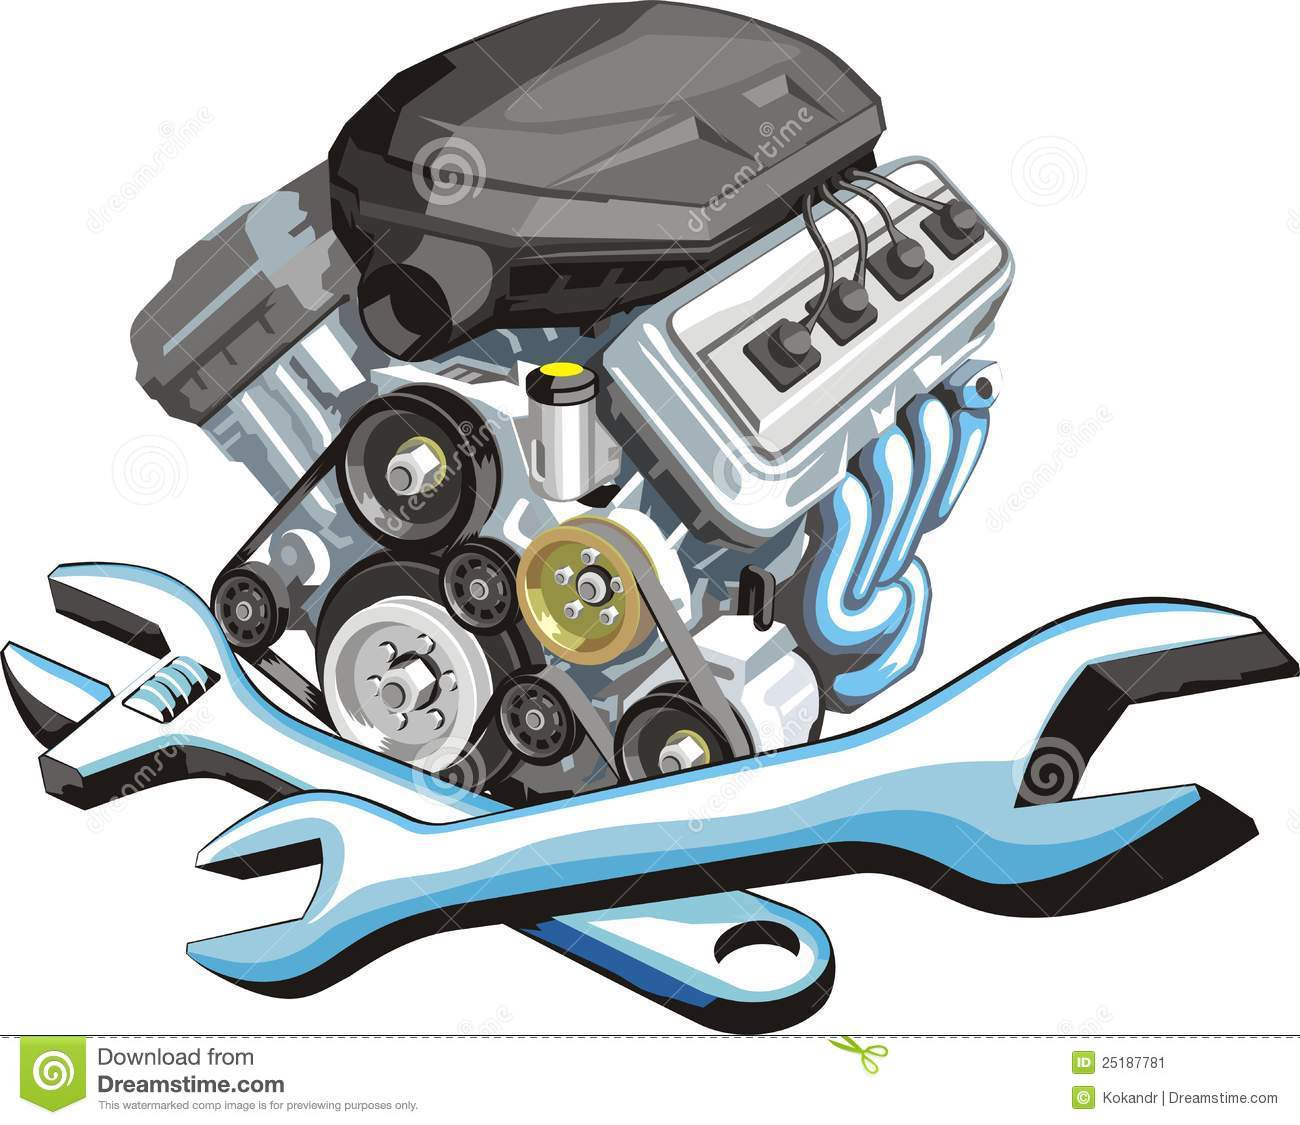 Car engine clipart free free download 30+ Engine Clipart | ClipartLook free download